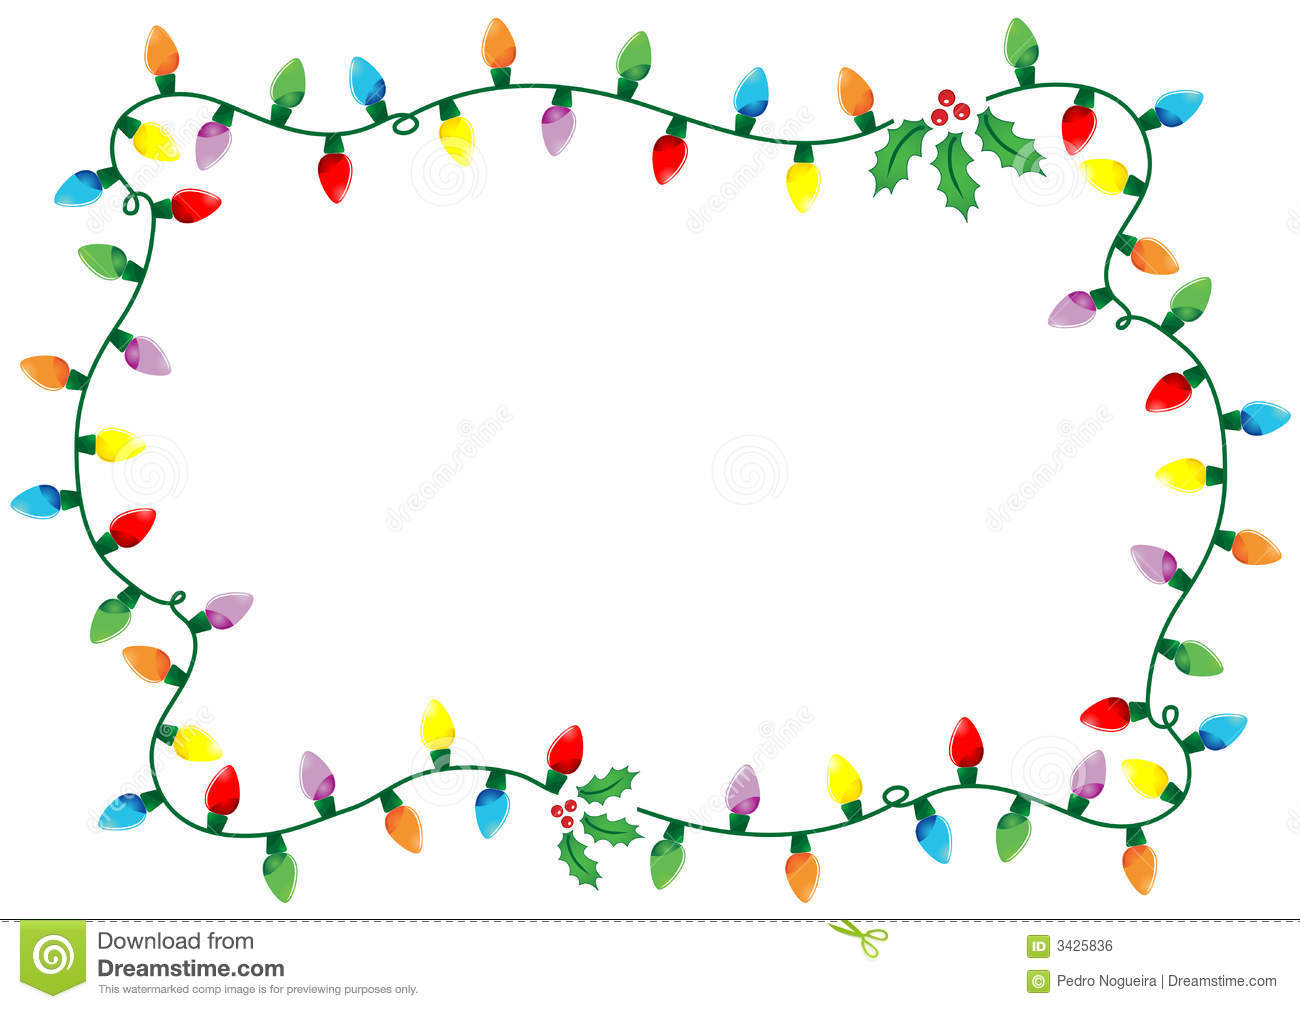 Christmas lights frame stock vector. Illustration of energy - 3425836